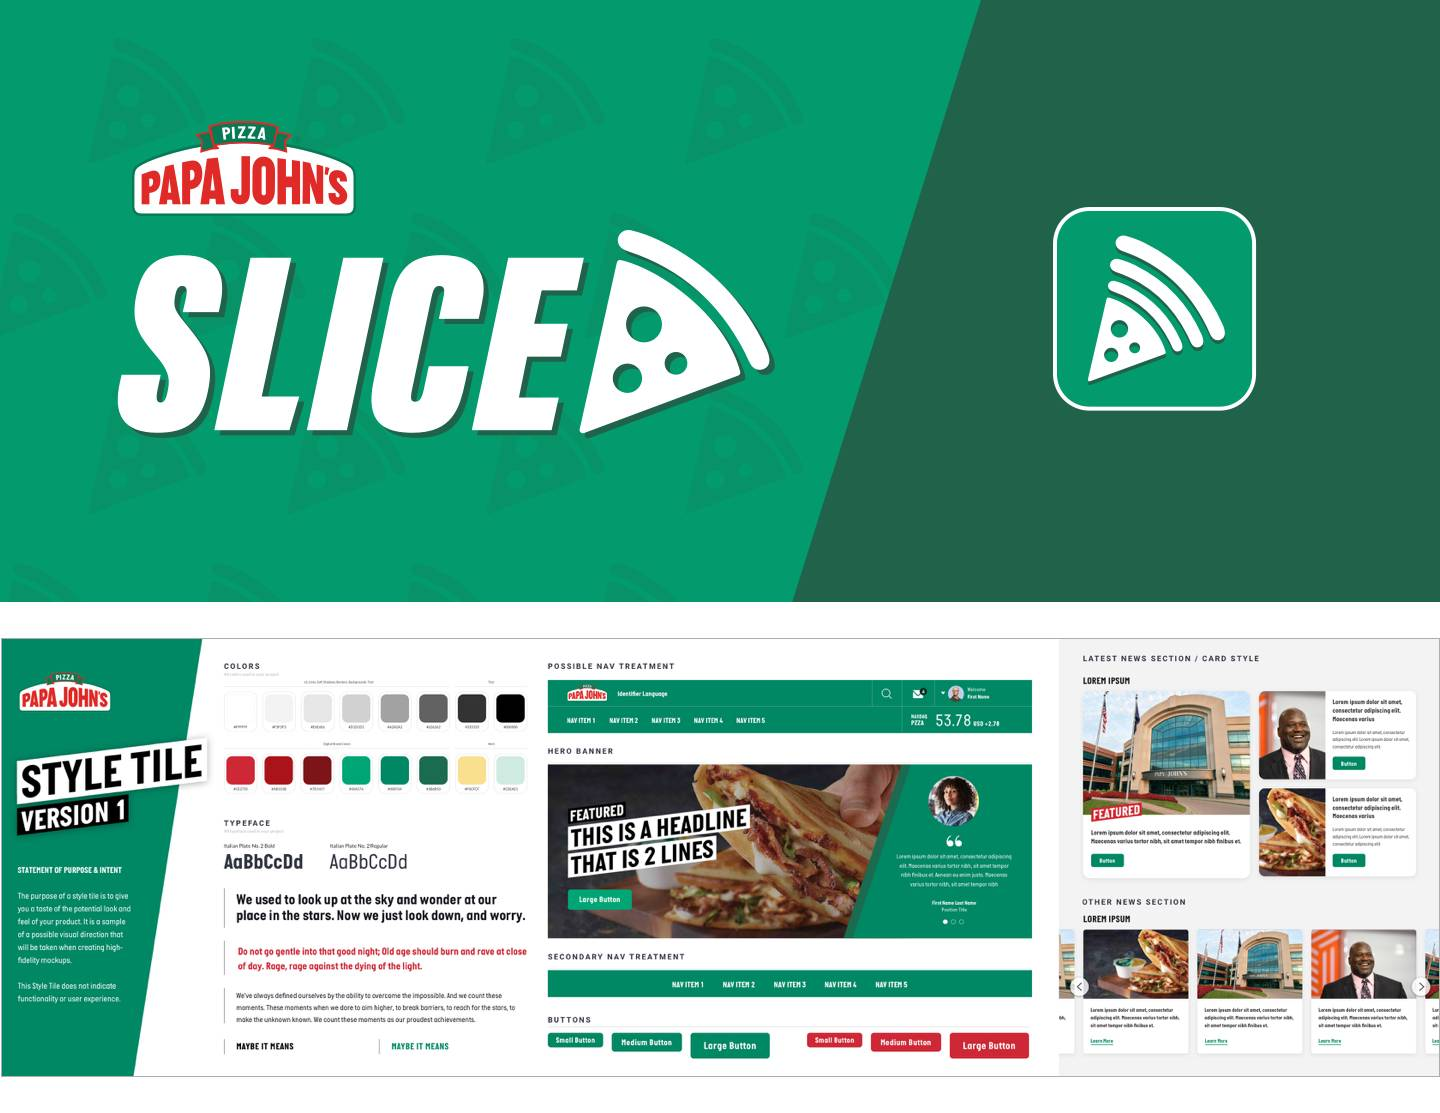 an example of design style tiles developed for the Papa Johns intranet project